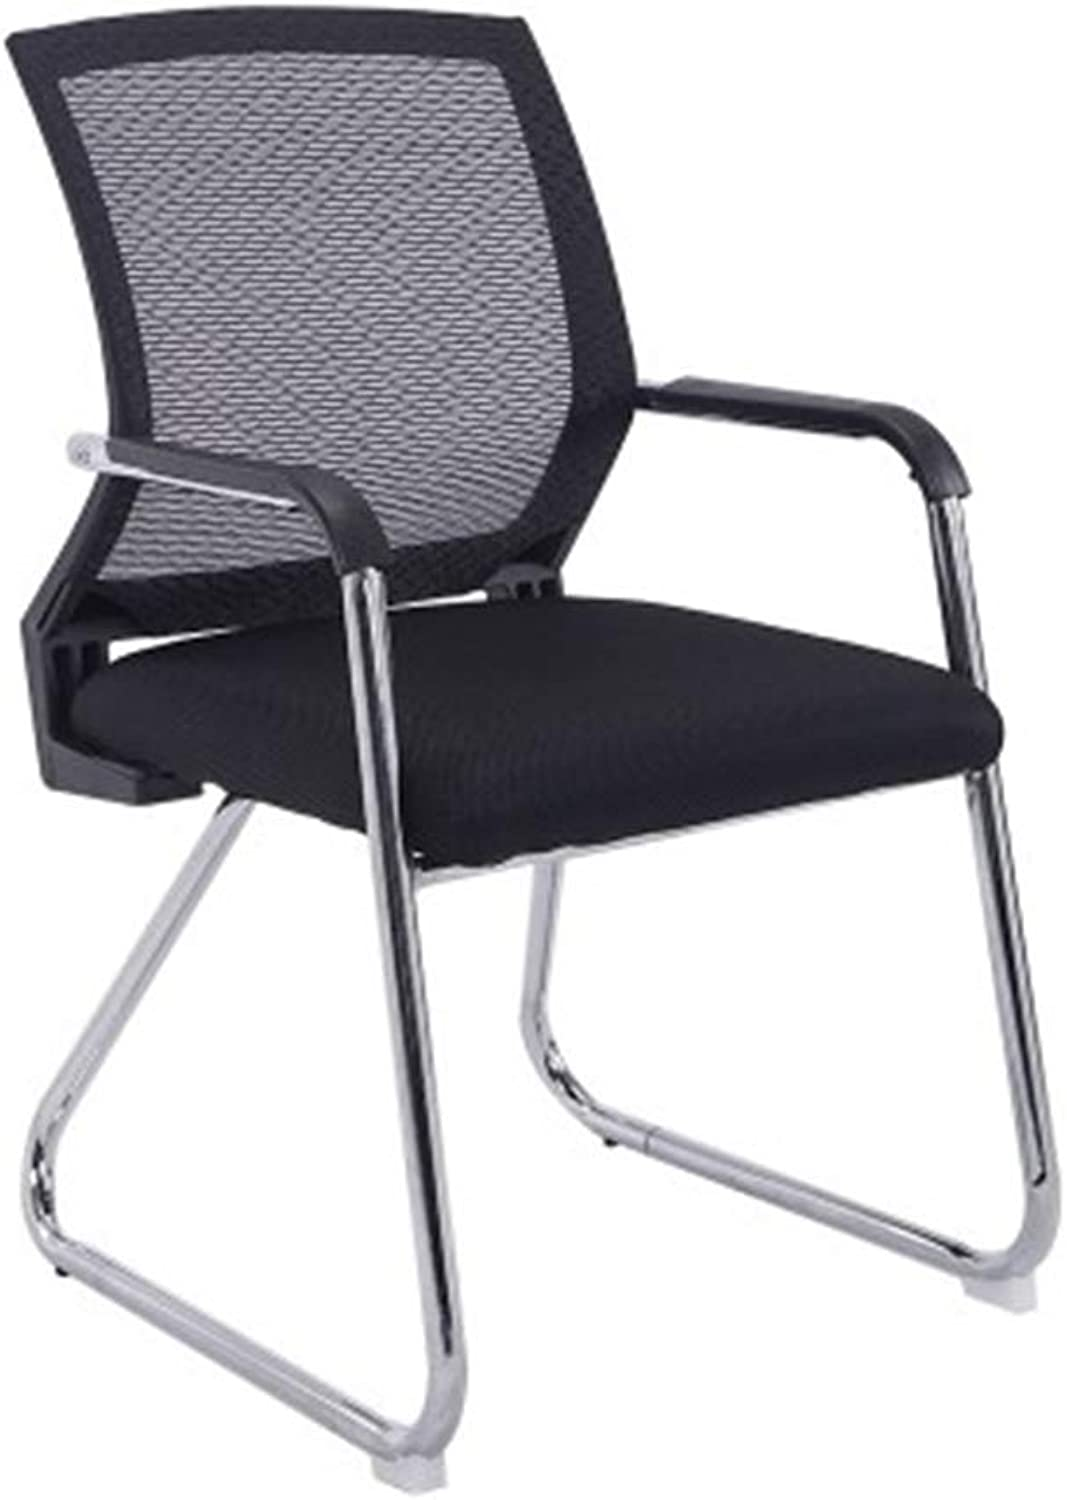 Study Chair, Comfortable Breathable Chair Wear Resistant Easy to Clean Chair Bedroom Study Chair Office Meeting Room Chair (color   Black)